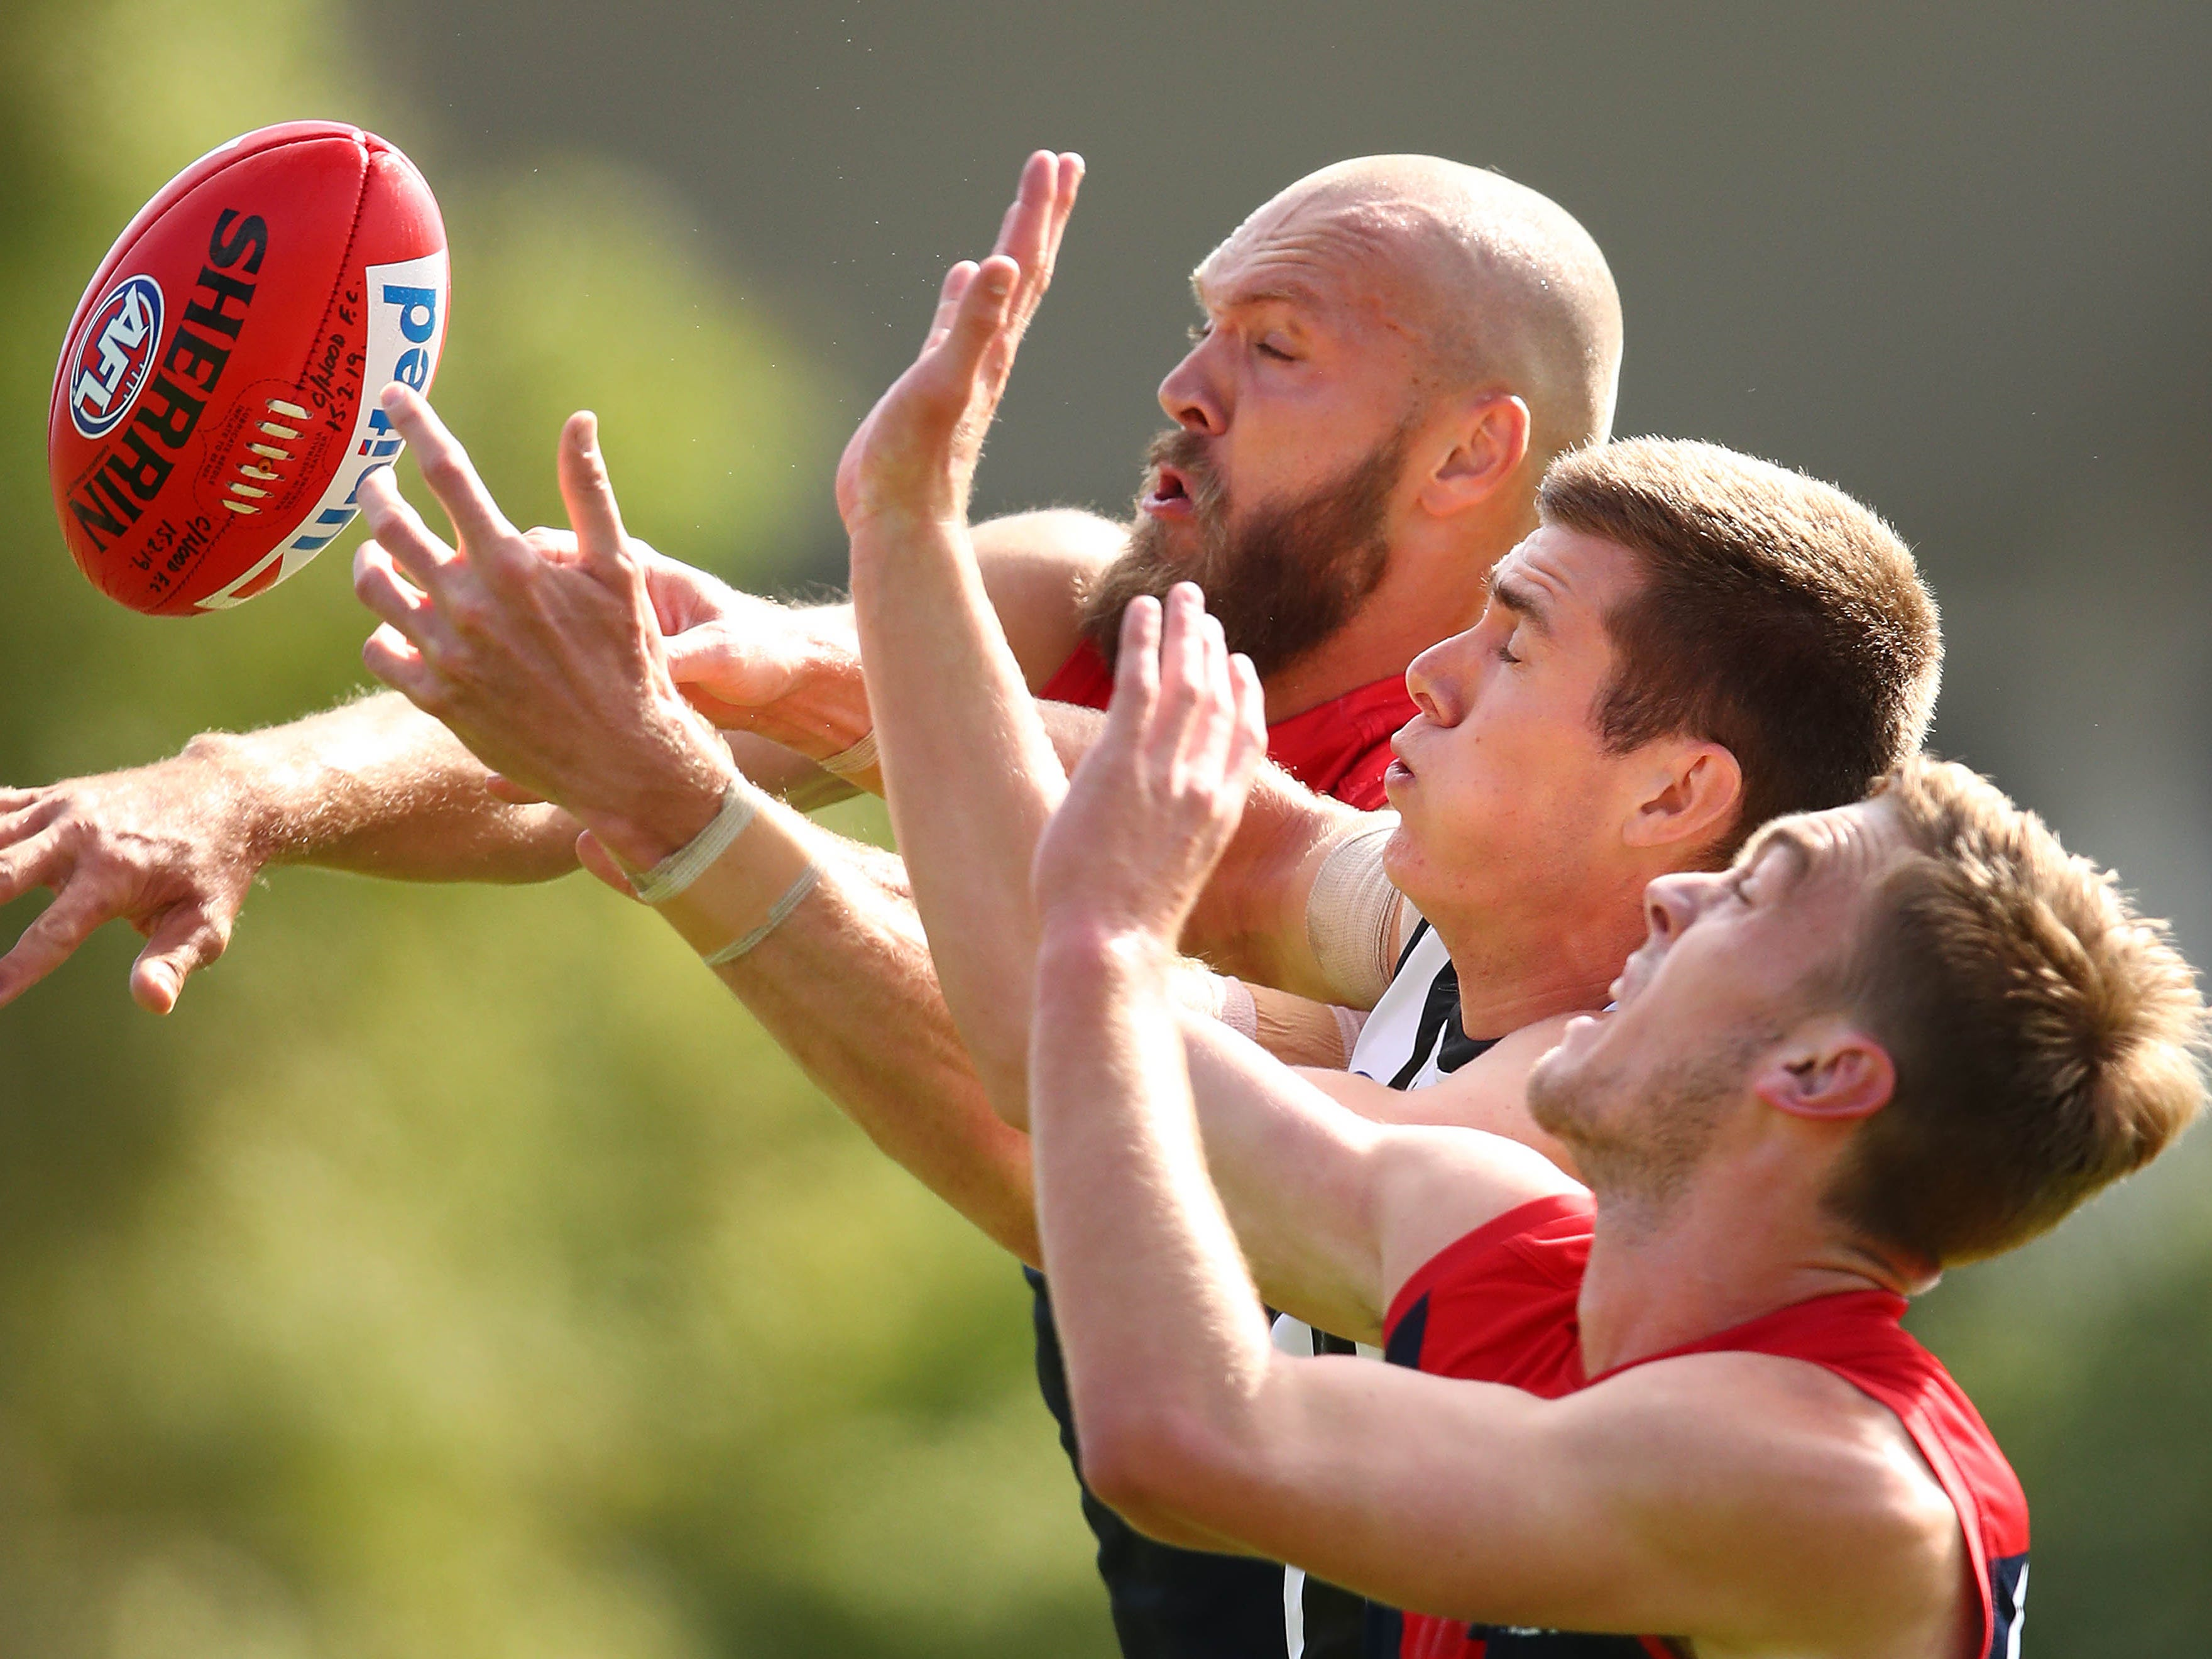 Max Gawn of the Demons and Mason Cox of the Magpies compete in an Australian football practice match between Collingwood and Melbourne at Olympic Park Oval on Feb. 22, 2019 in Melbourne.